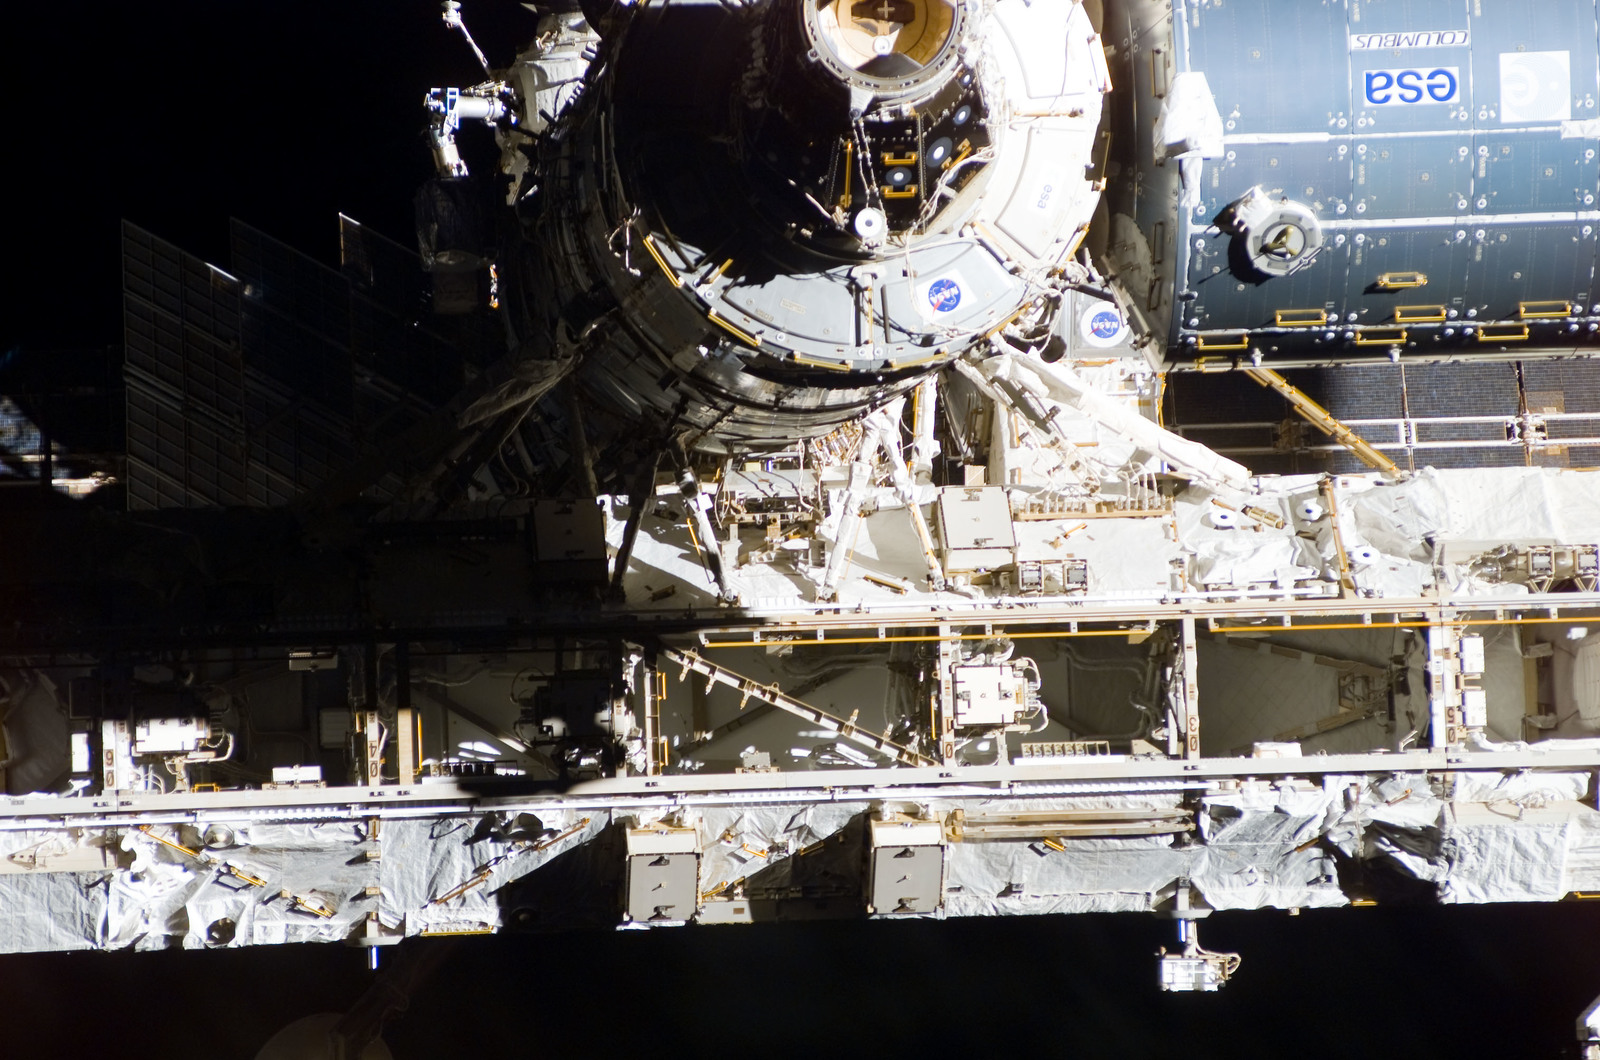 S122E009942 - STS-122 - Flyaround view of ISS after STS-122 Undocking